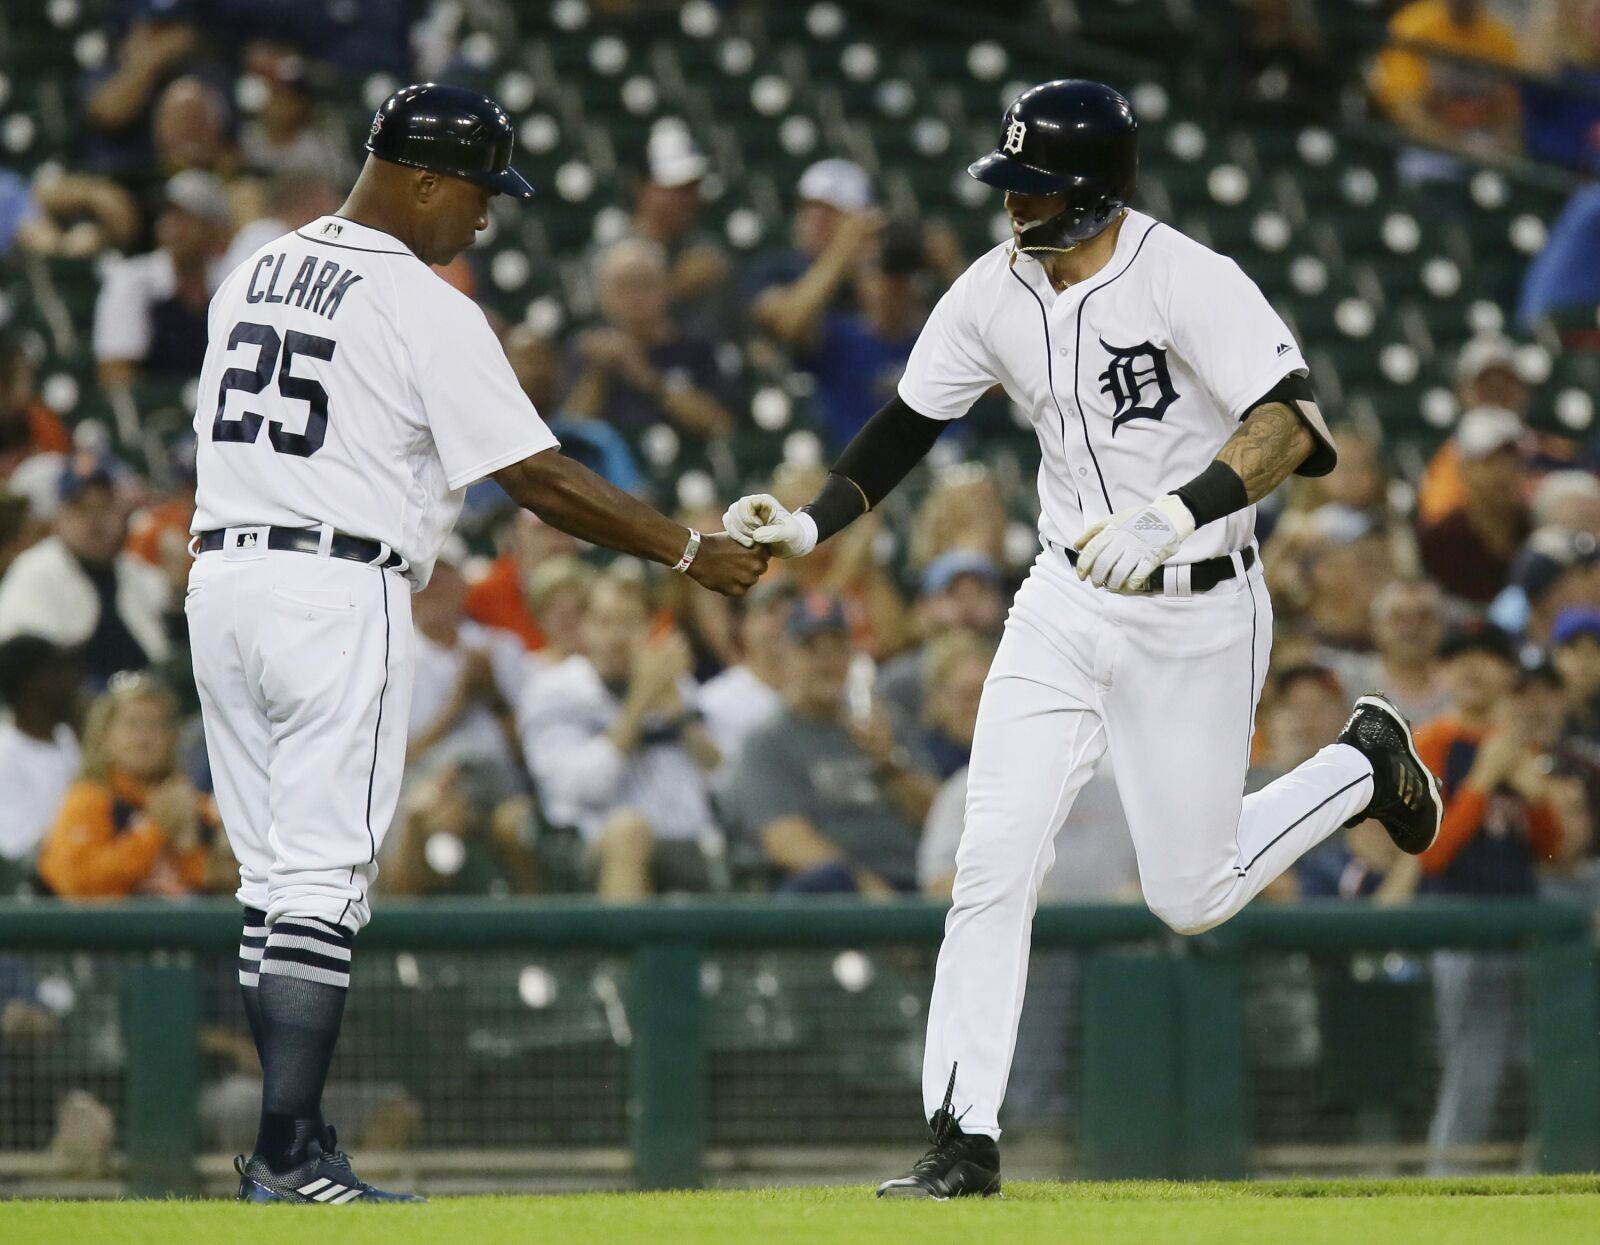 St. Louis Cardinals: Will Nicholas Castellanos be traded to the Cardinals?